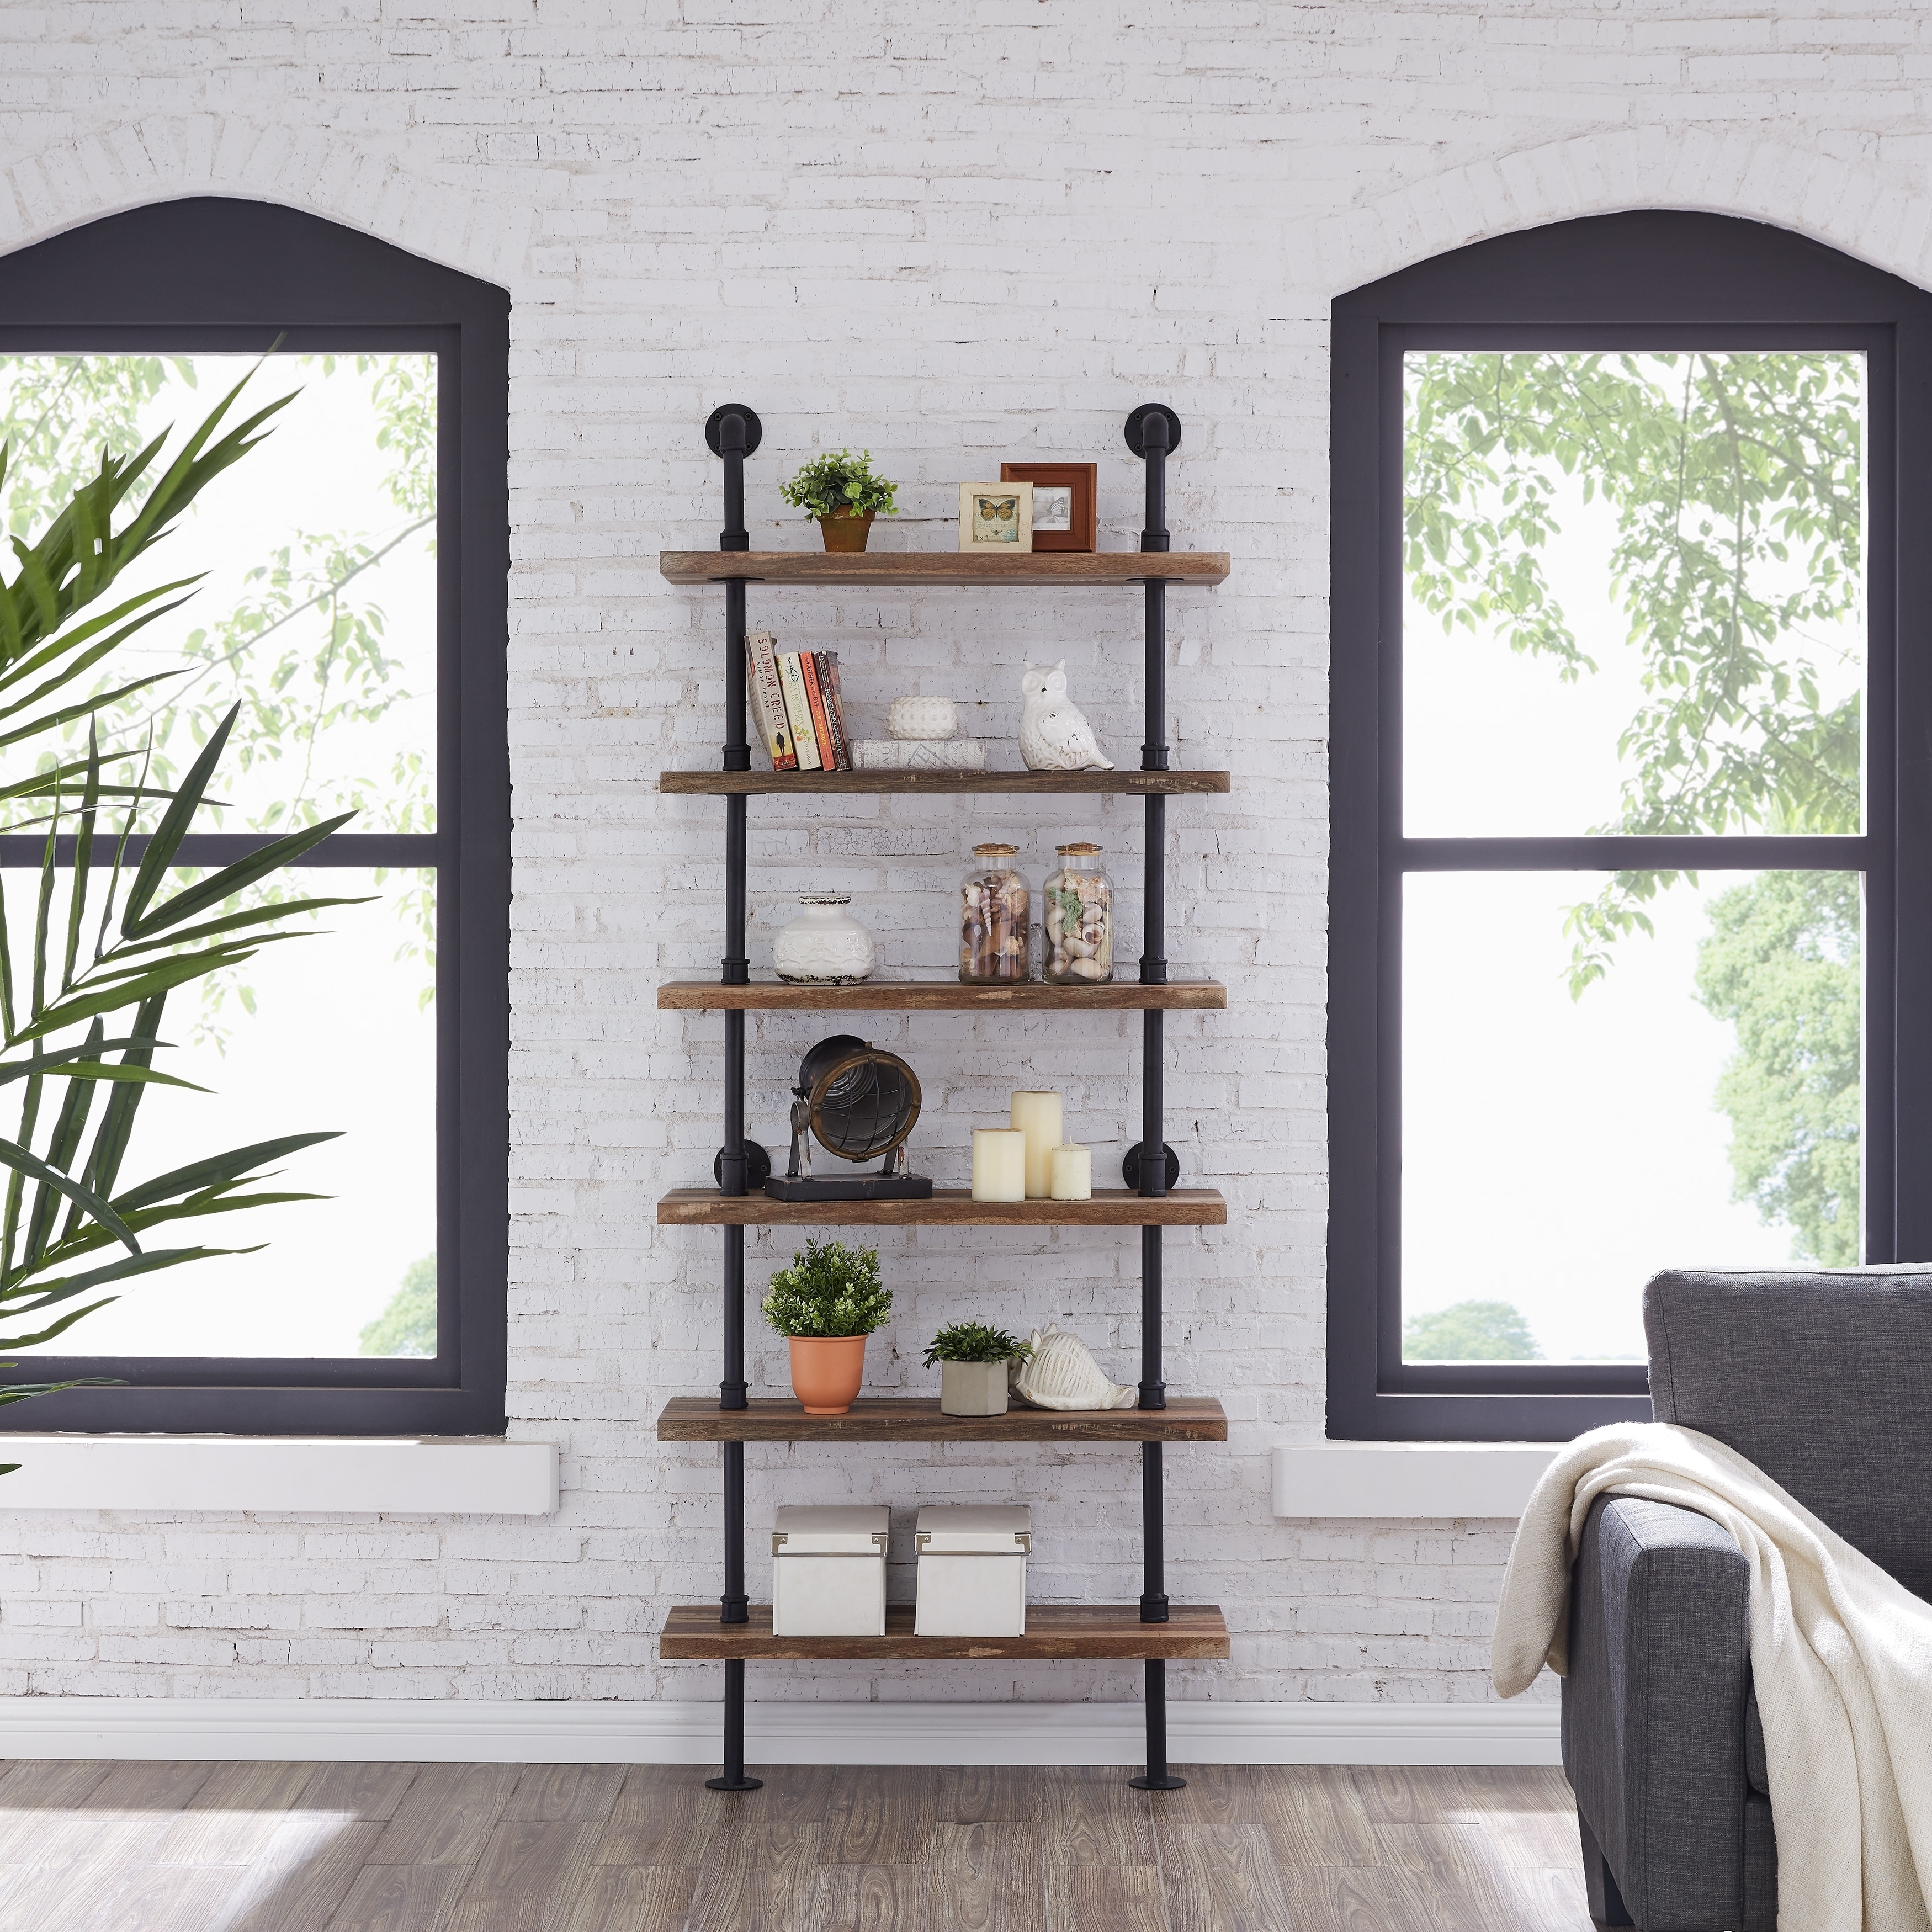 Danya B Industrial Pipe Wall Ladder Shelving Unit In Distressed Wood